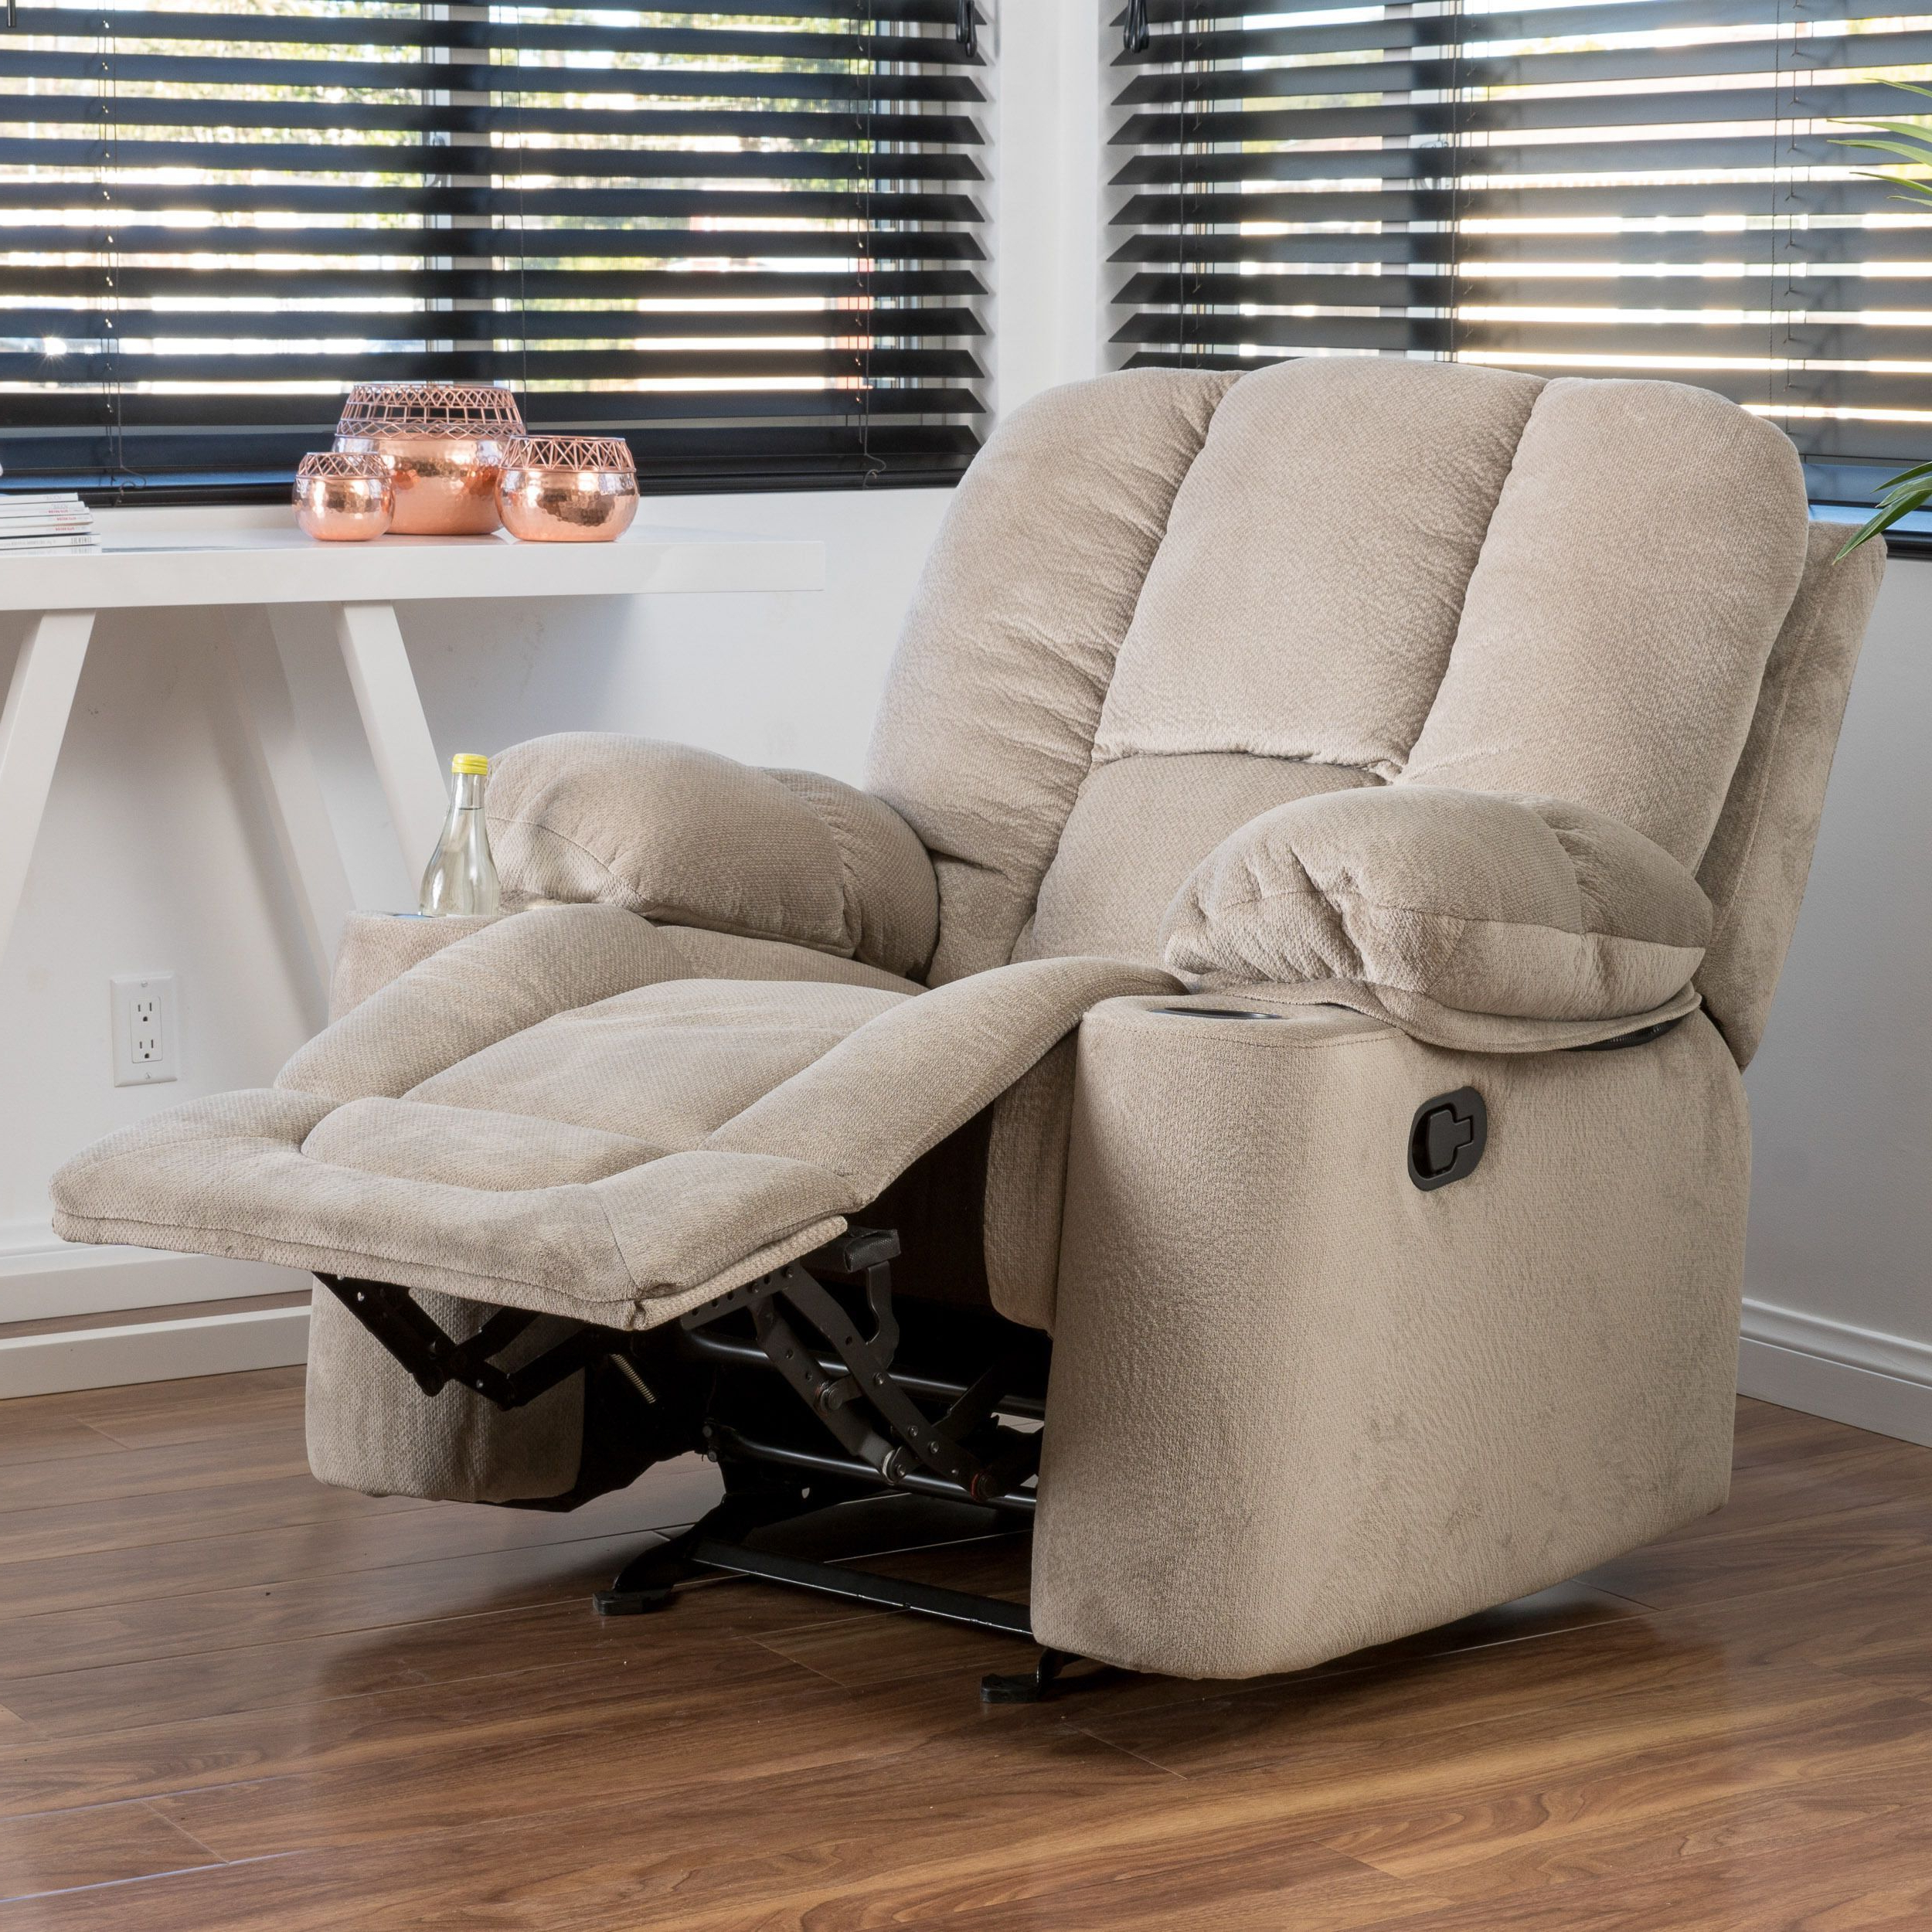 2018 Gannon Linen Power Swivel Recliners Pertaining To Gannon Fabric Glider Recliner Club Chairchristopher Knight Home (View 4 of 20)